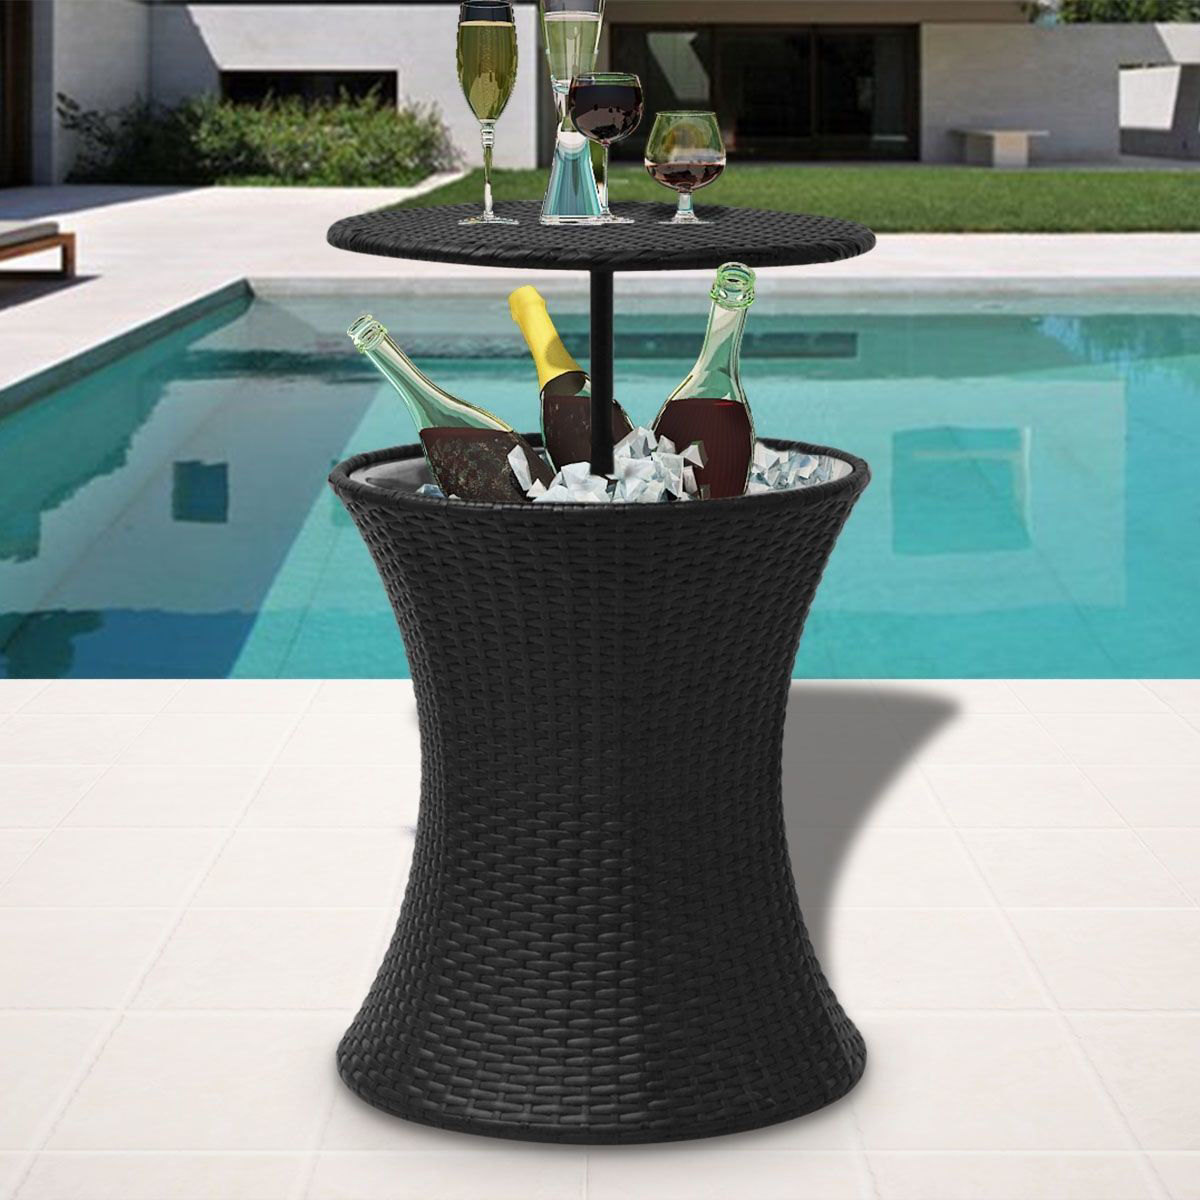 Picture of Outdoor Ice Cooler Bucket Table Poly Rattan - Black